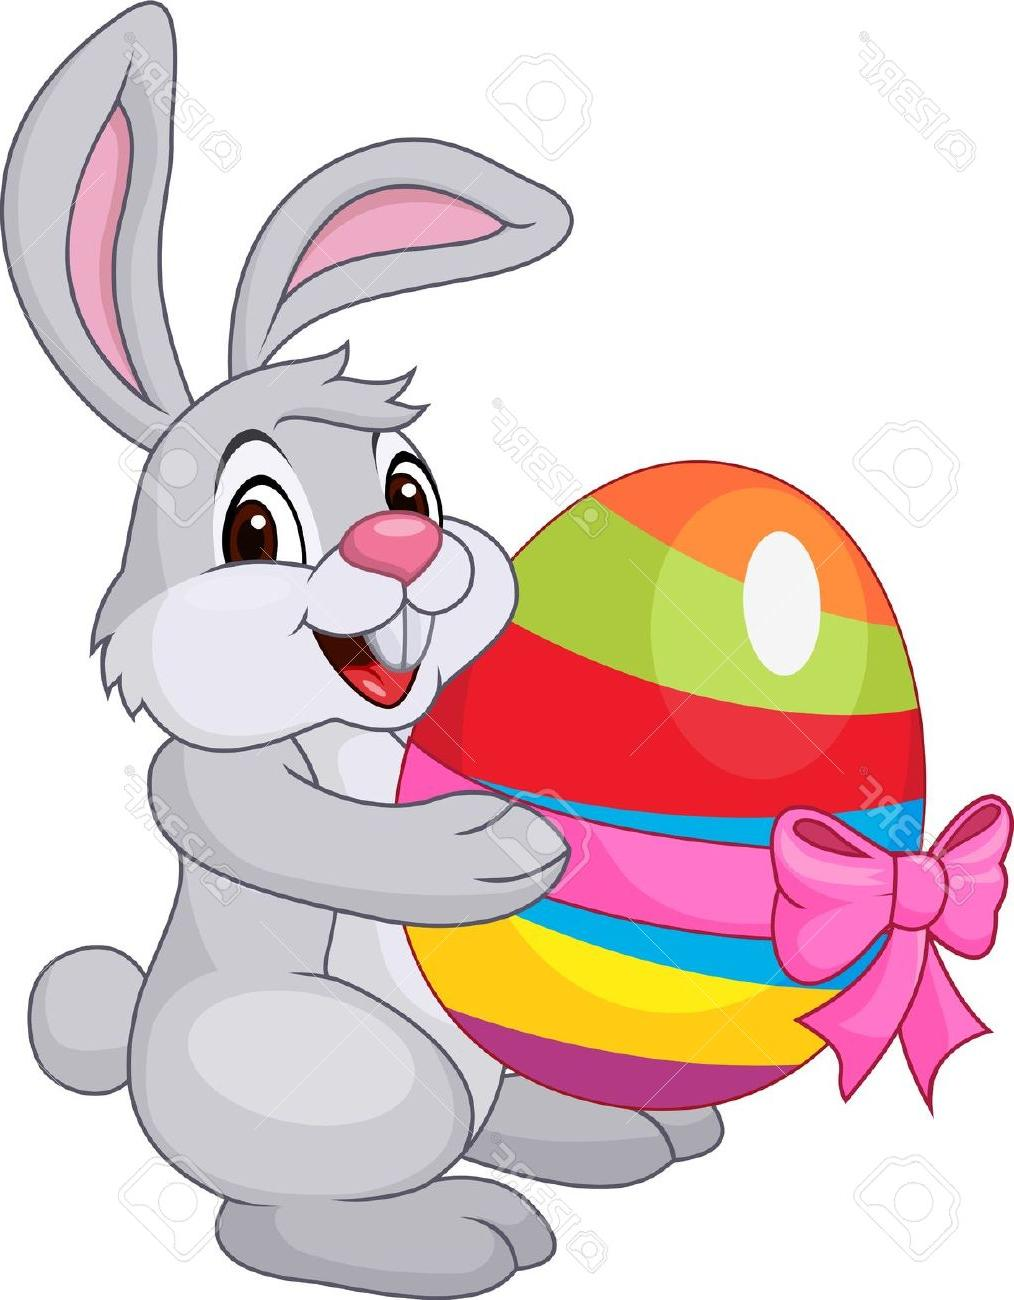 Cute Easter Bunny Clip Art image #46587